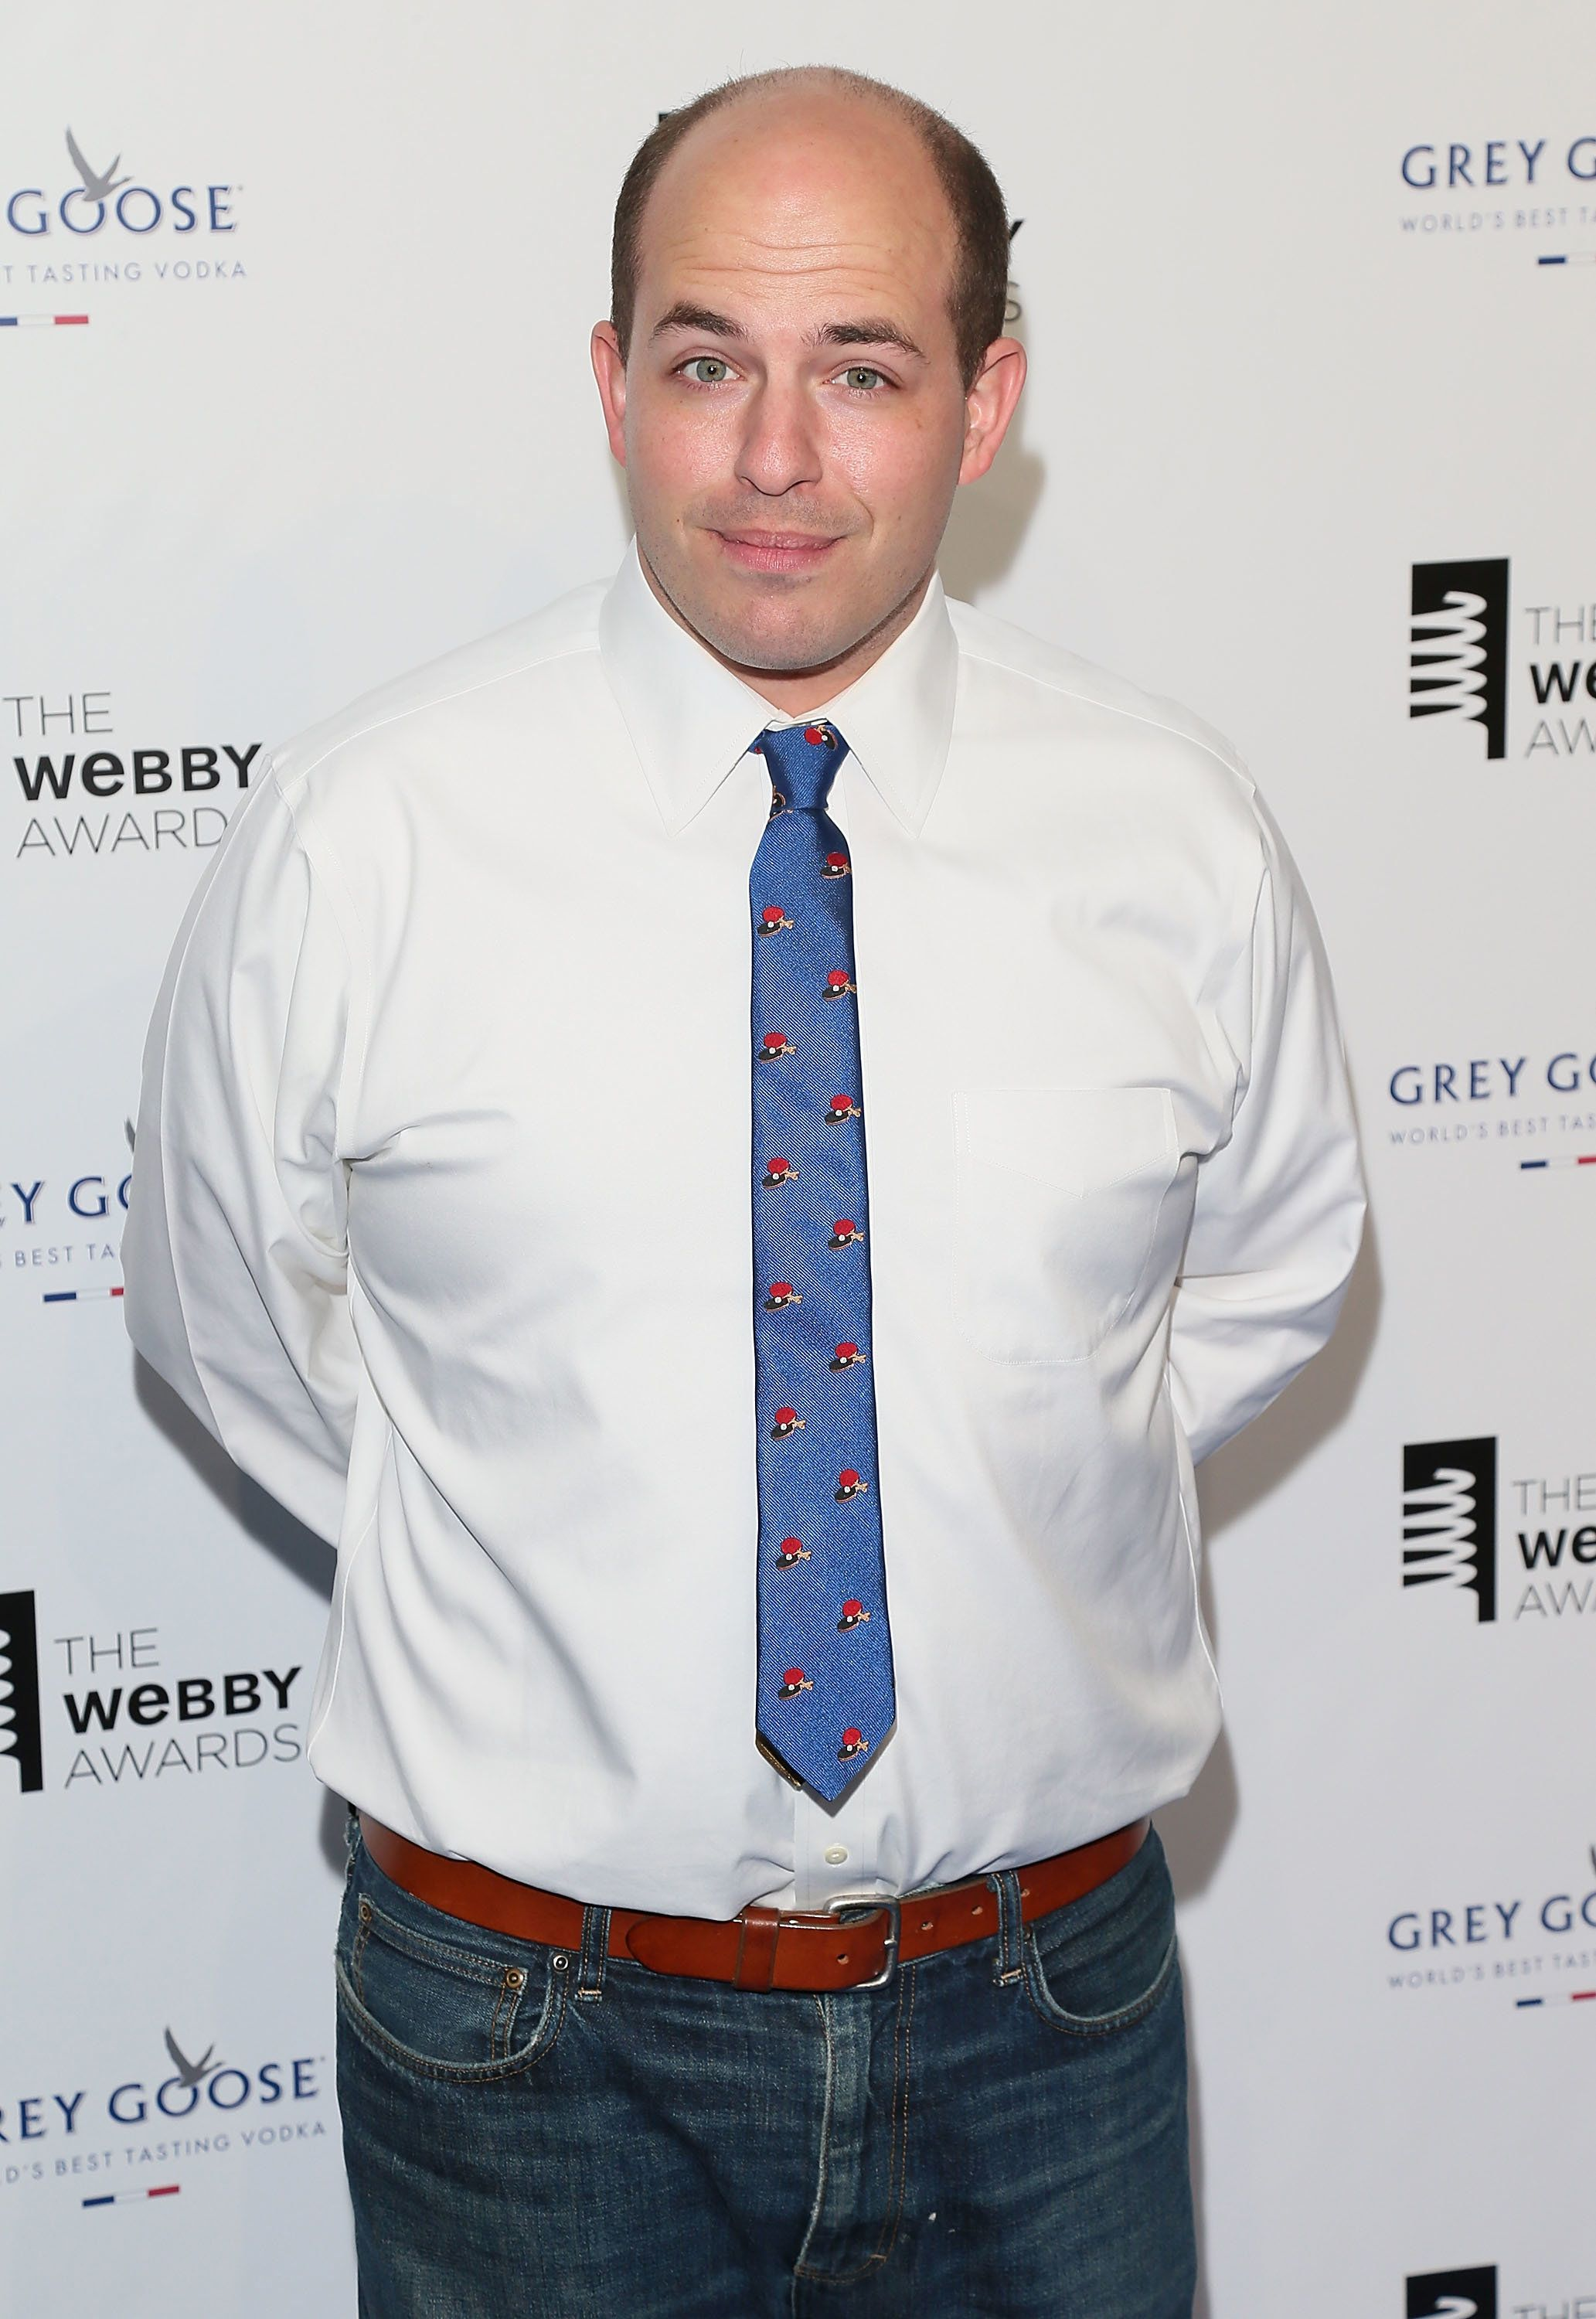 NEW YORK, NY - MAY 18:  Brian Stelter attends the 19th Annual Webby Awards at Cipriani Wall Street on May 18, 2015 in New York City.  (Photo by Charles Norfleet/WireImage)